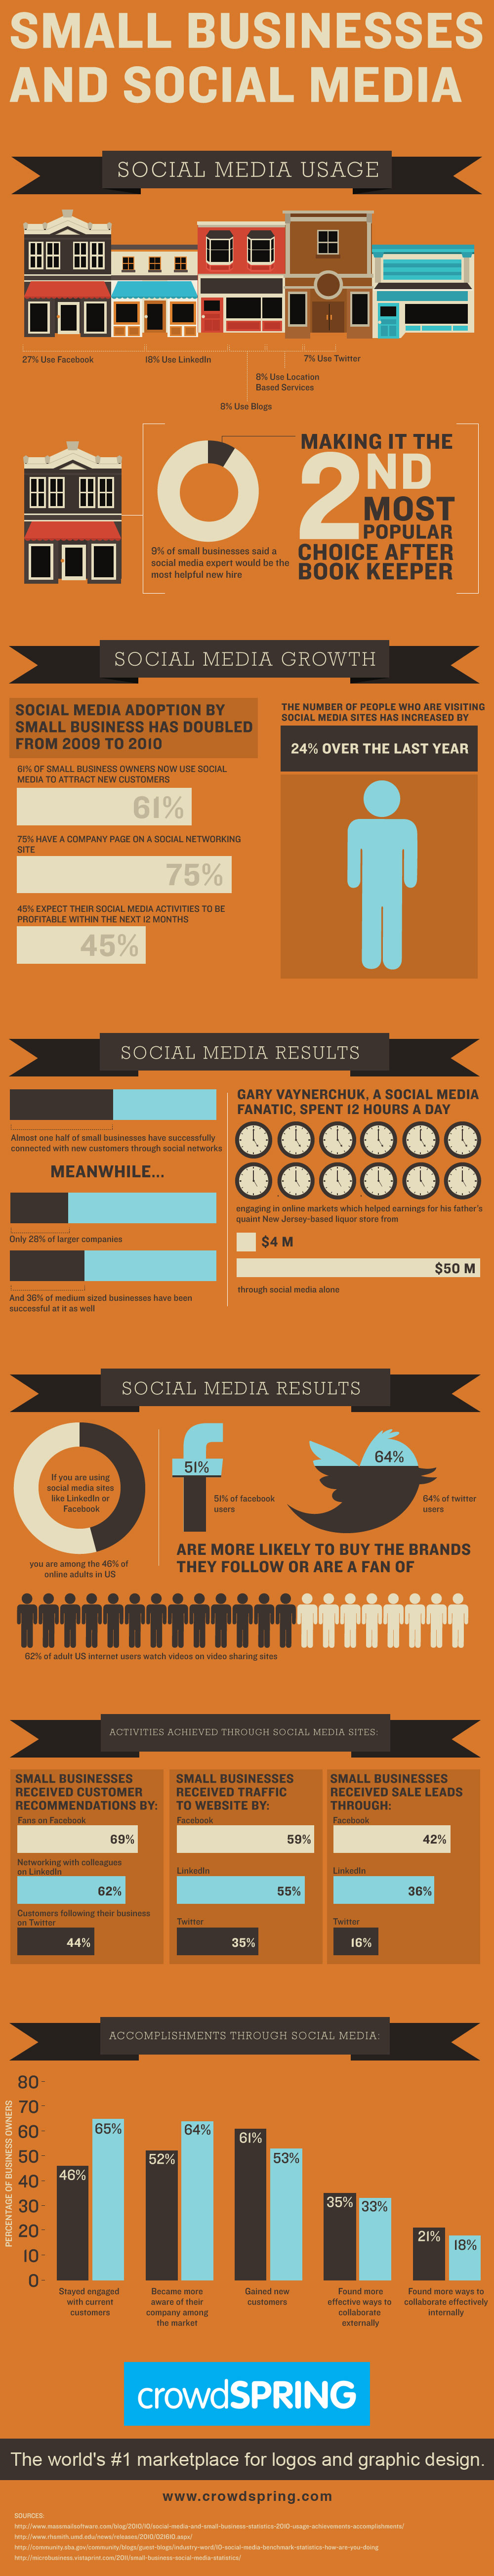 small businesses and social-media infographic